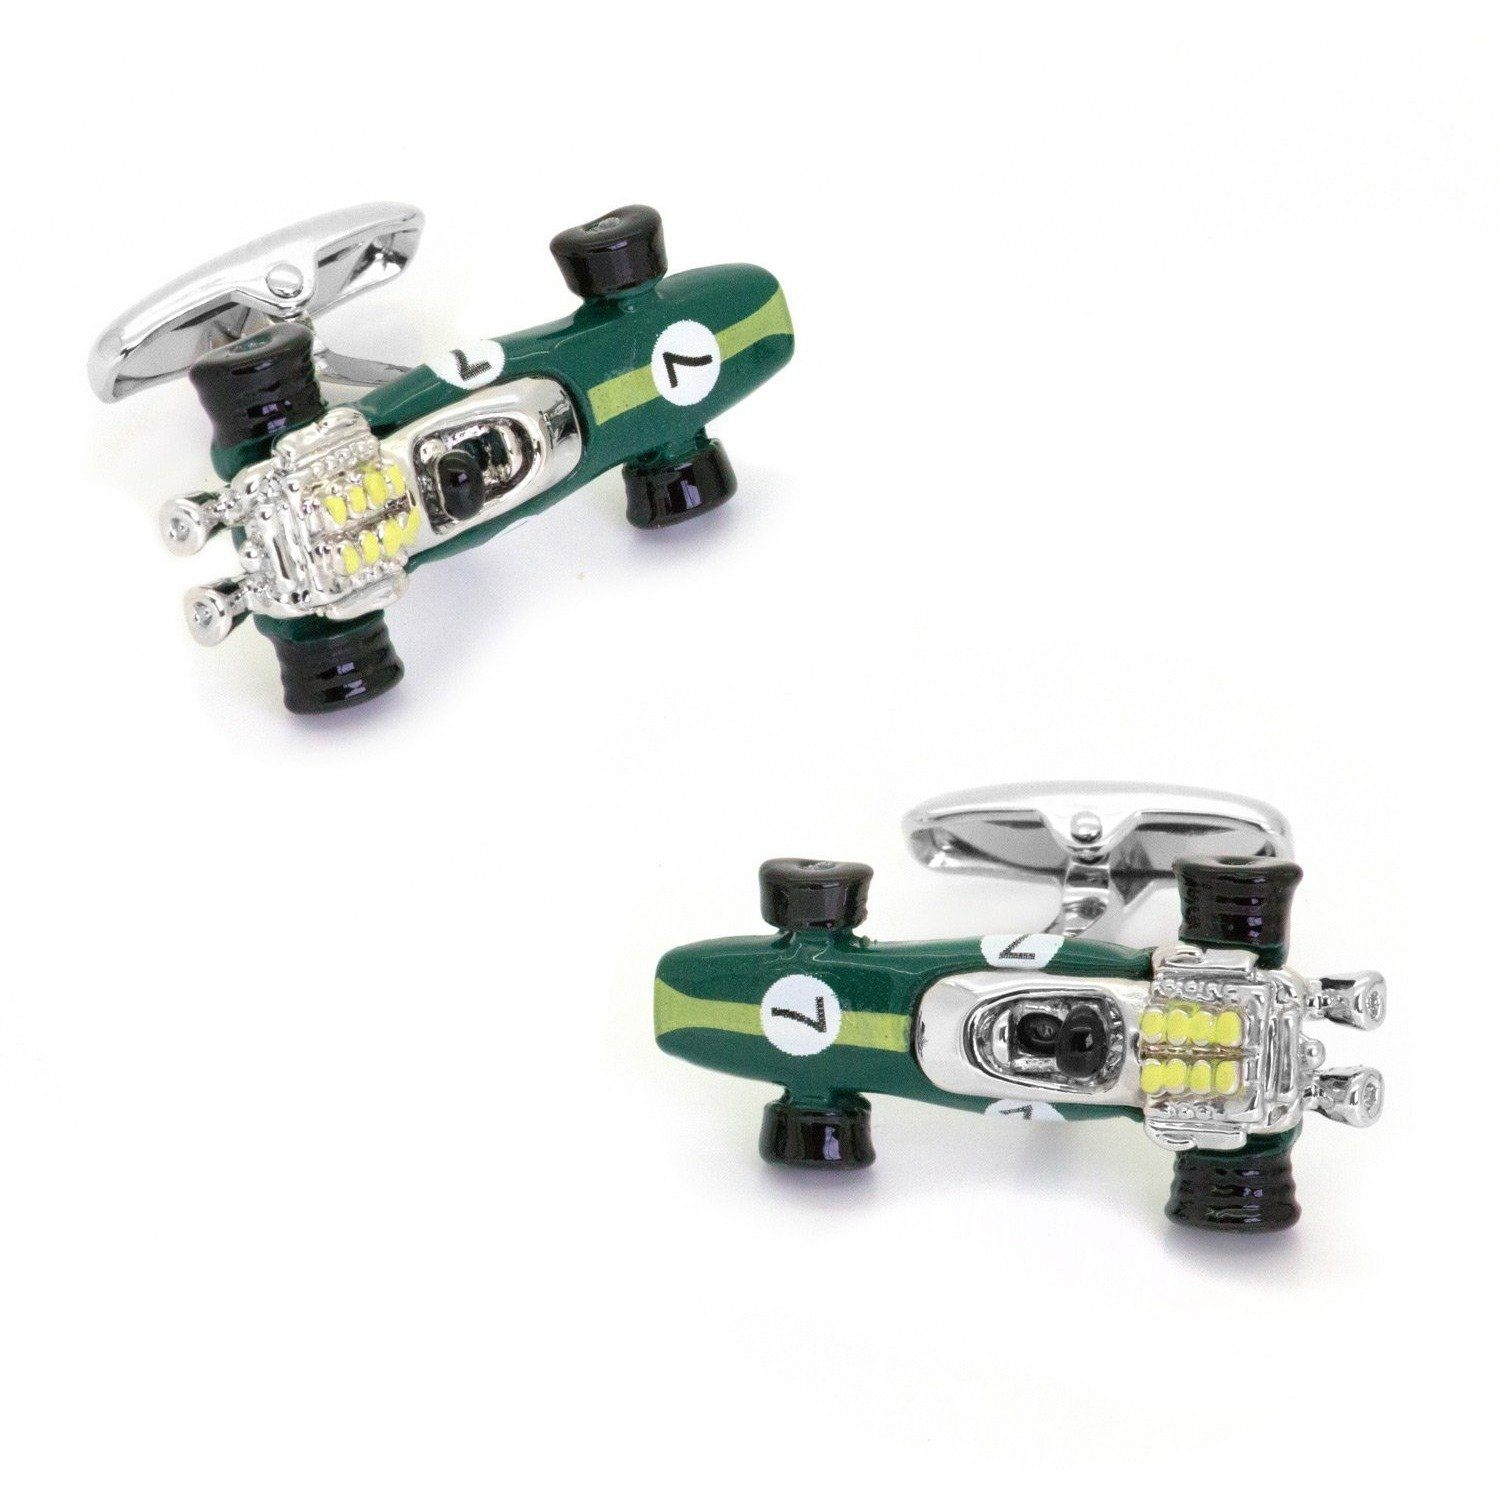 Green Lotus Racing Car Cufflinks Type 49 1967, Novelty Cufflinks, Cuffed.com.au, CL6542, $29.00